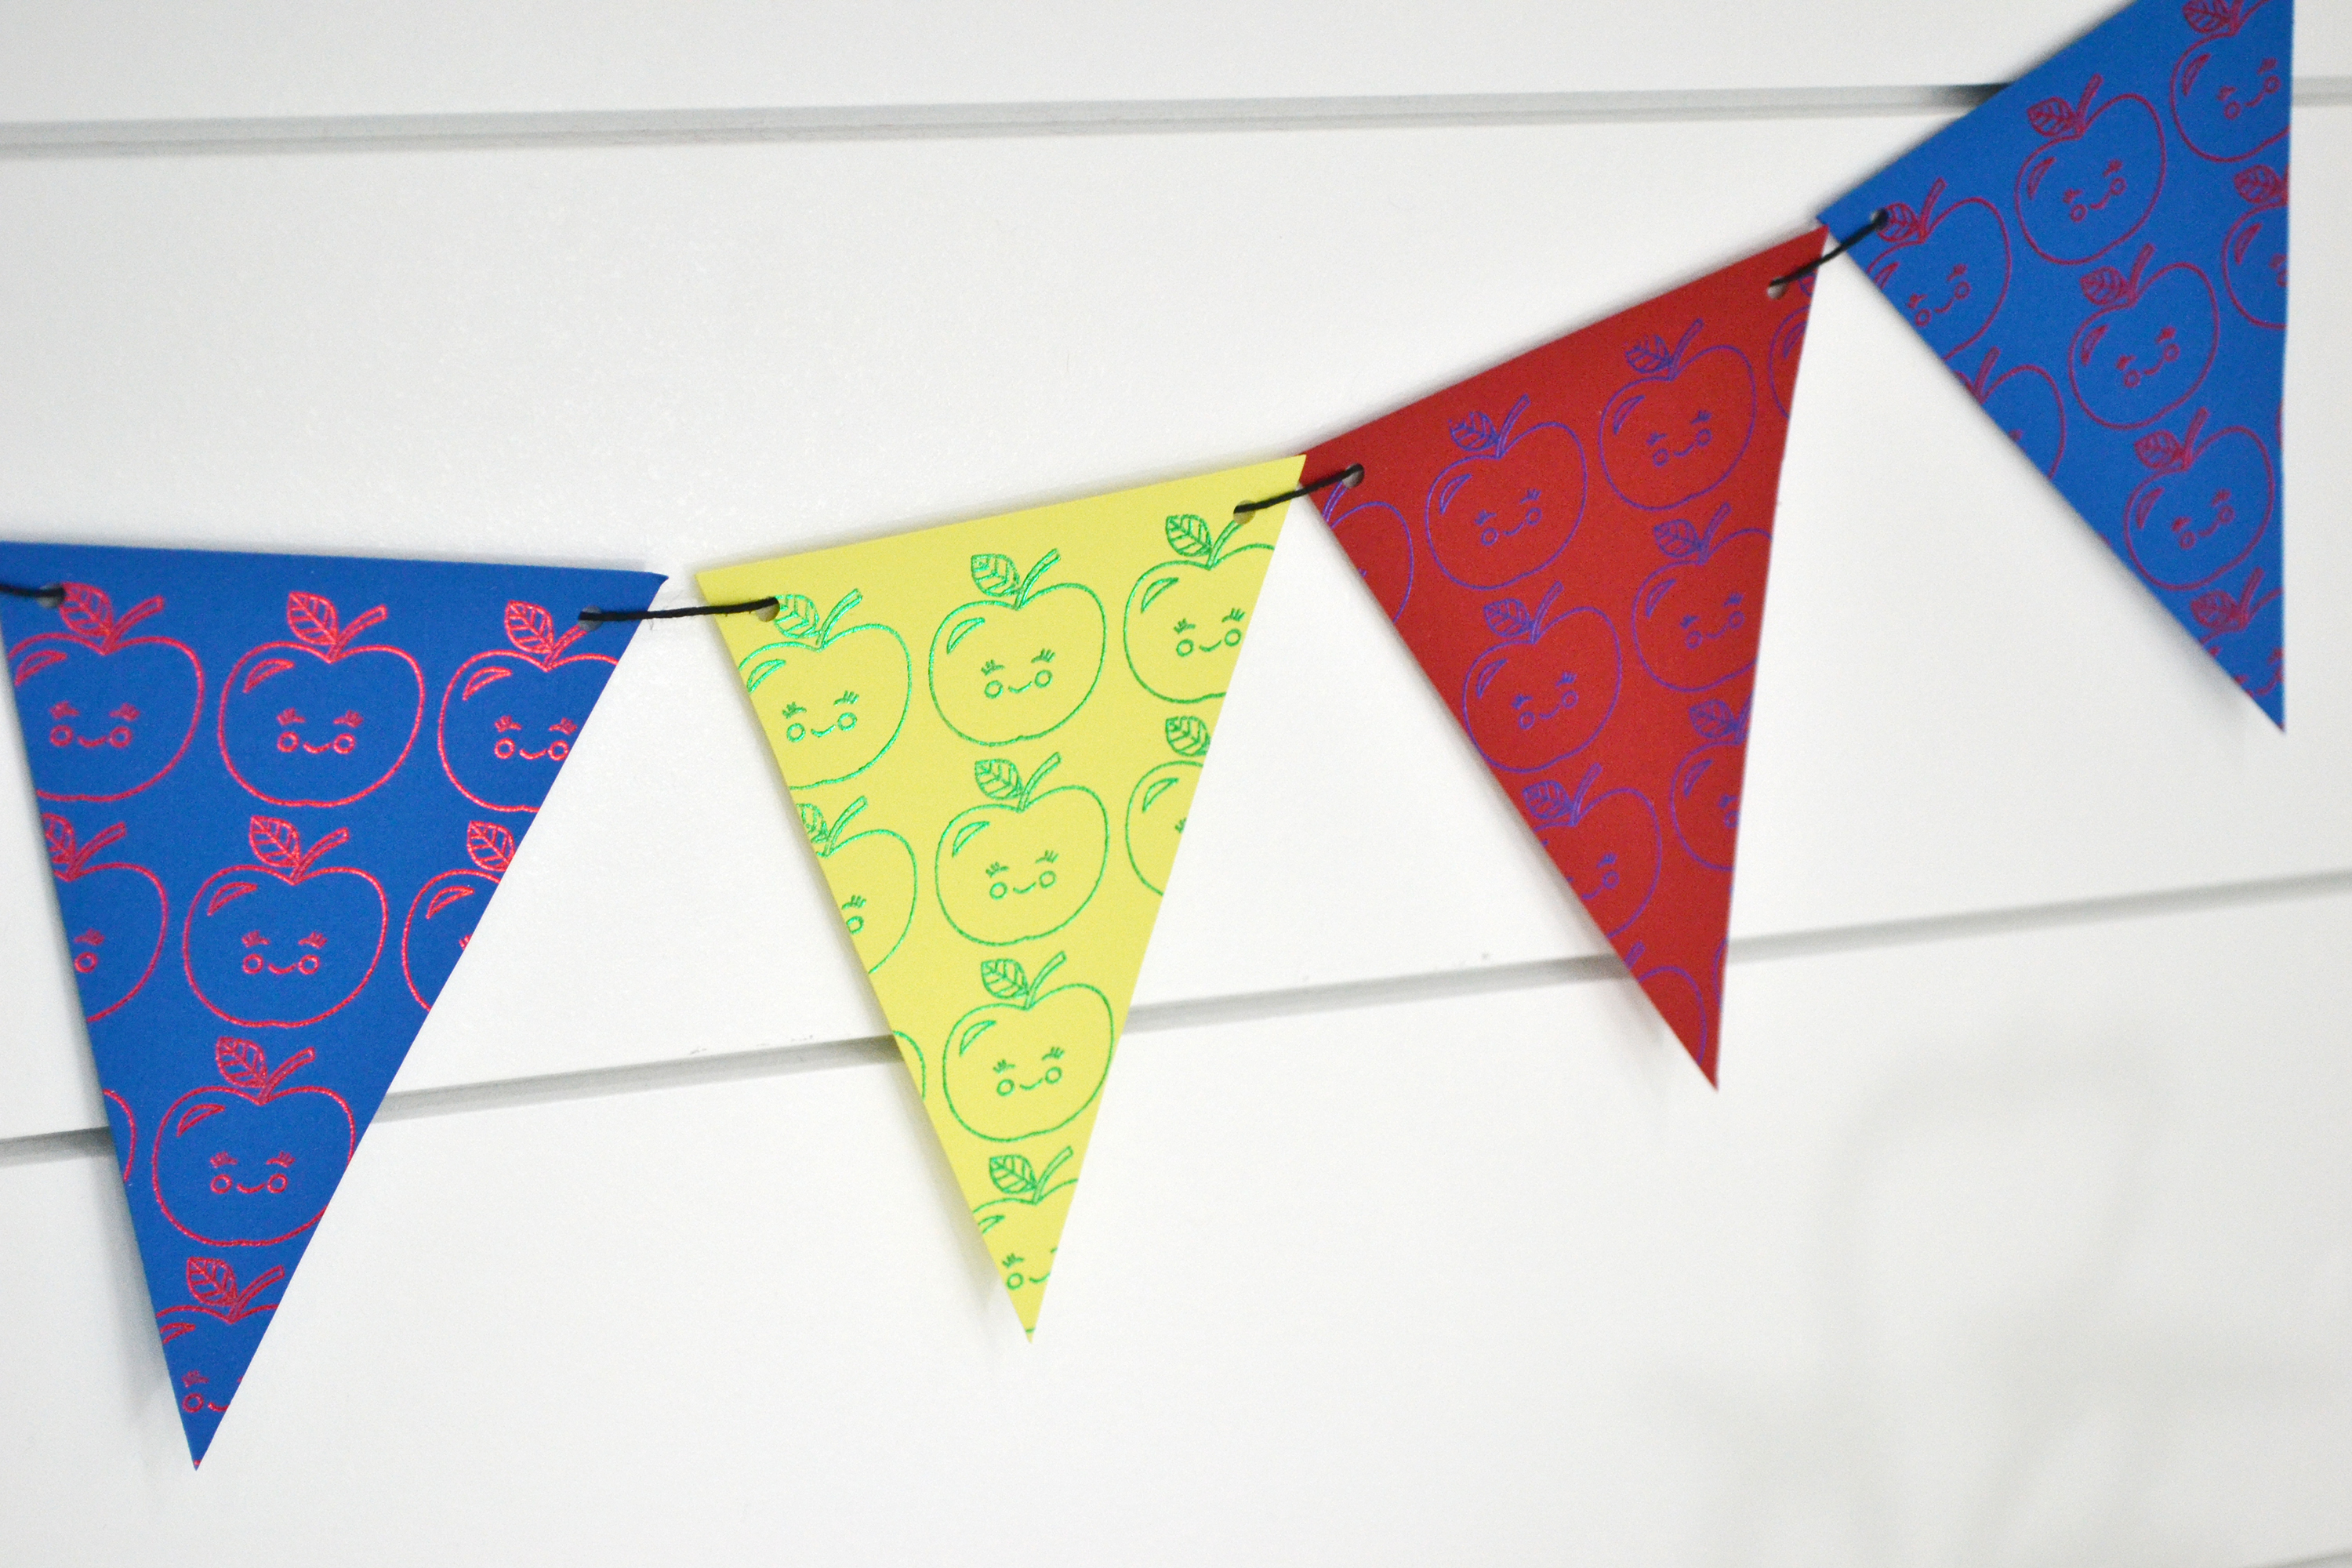 Foil Quill Back to School Party by Aly Dosdall for We R Memory Keepers 6